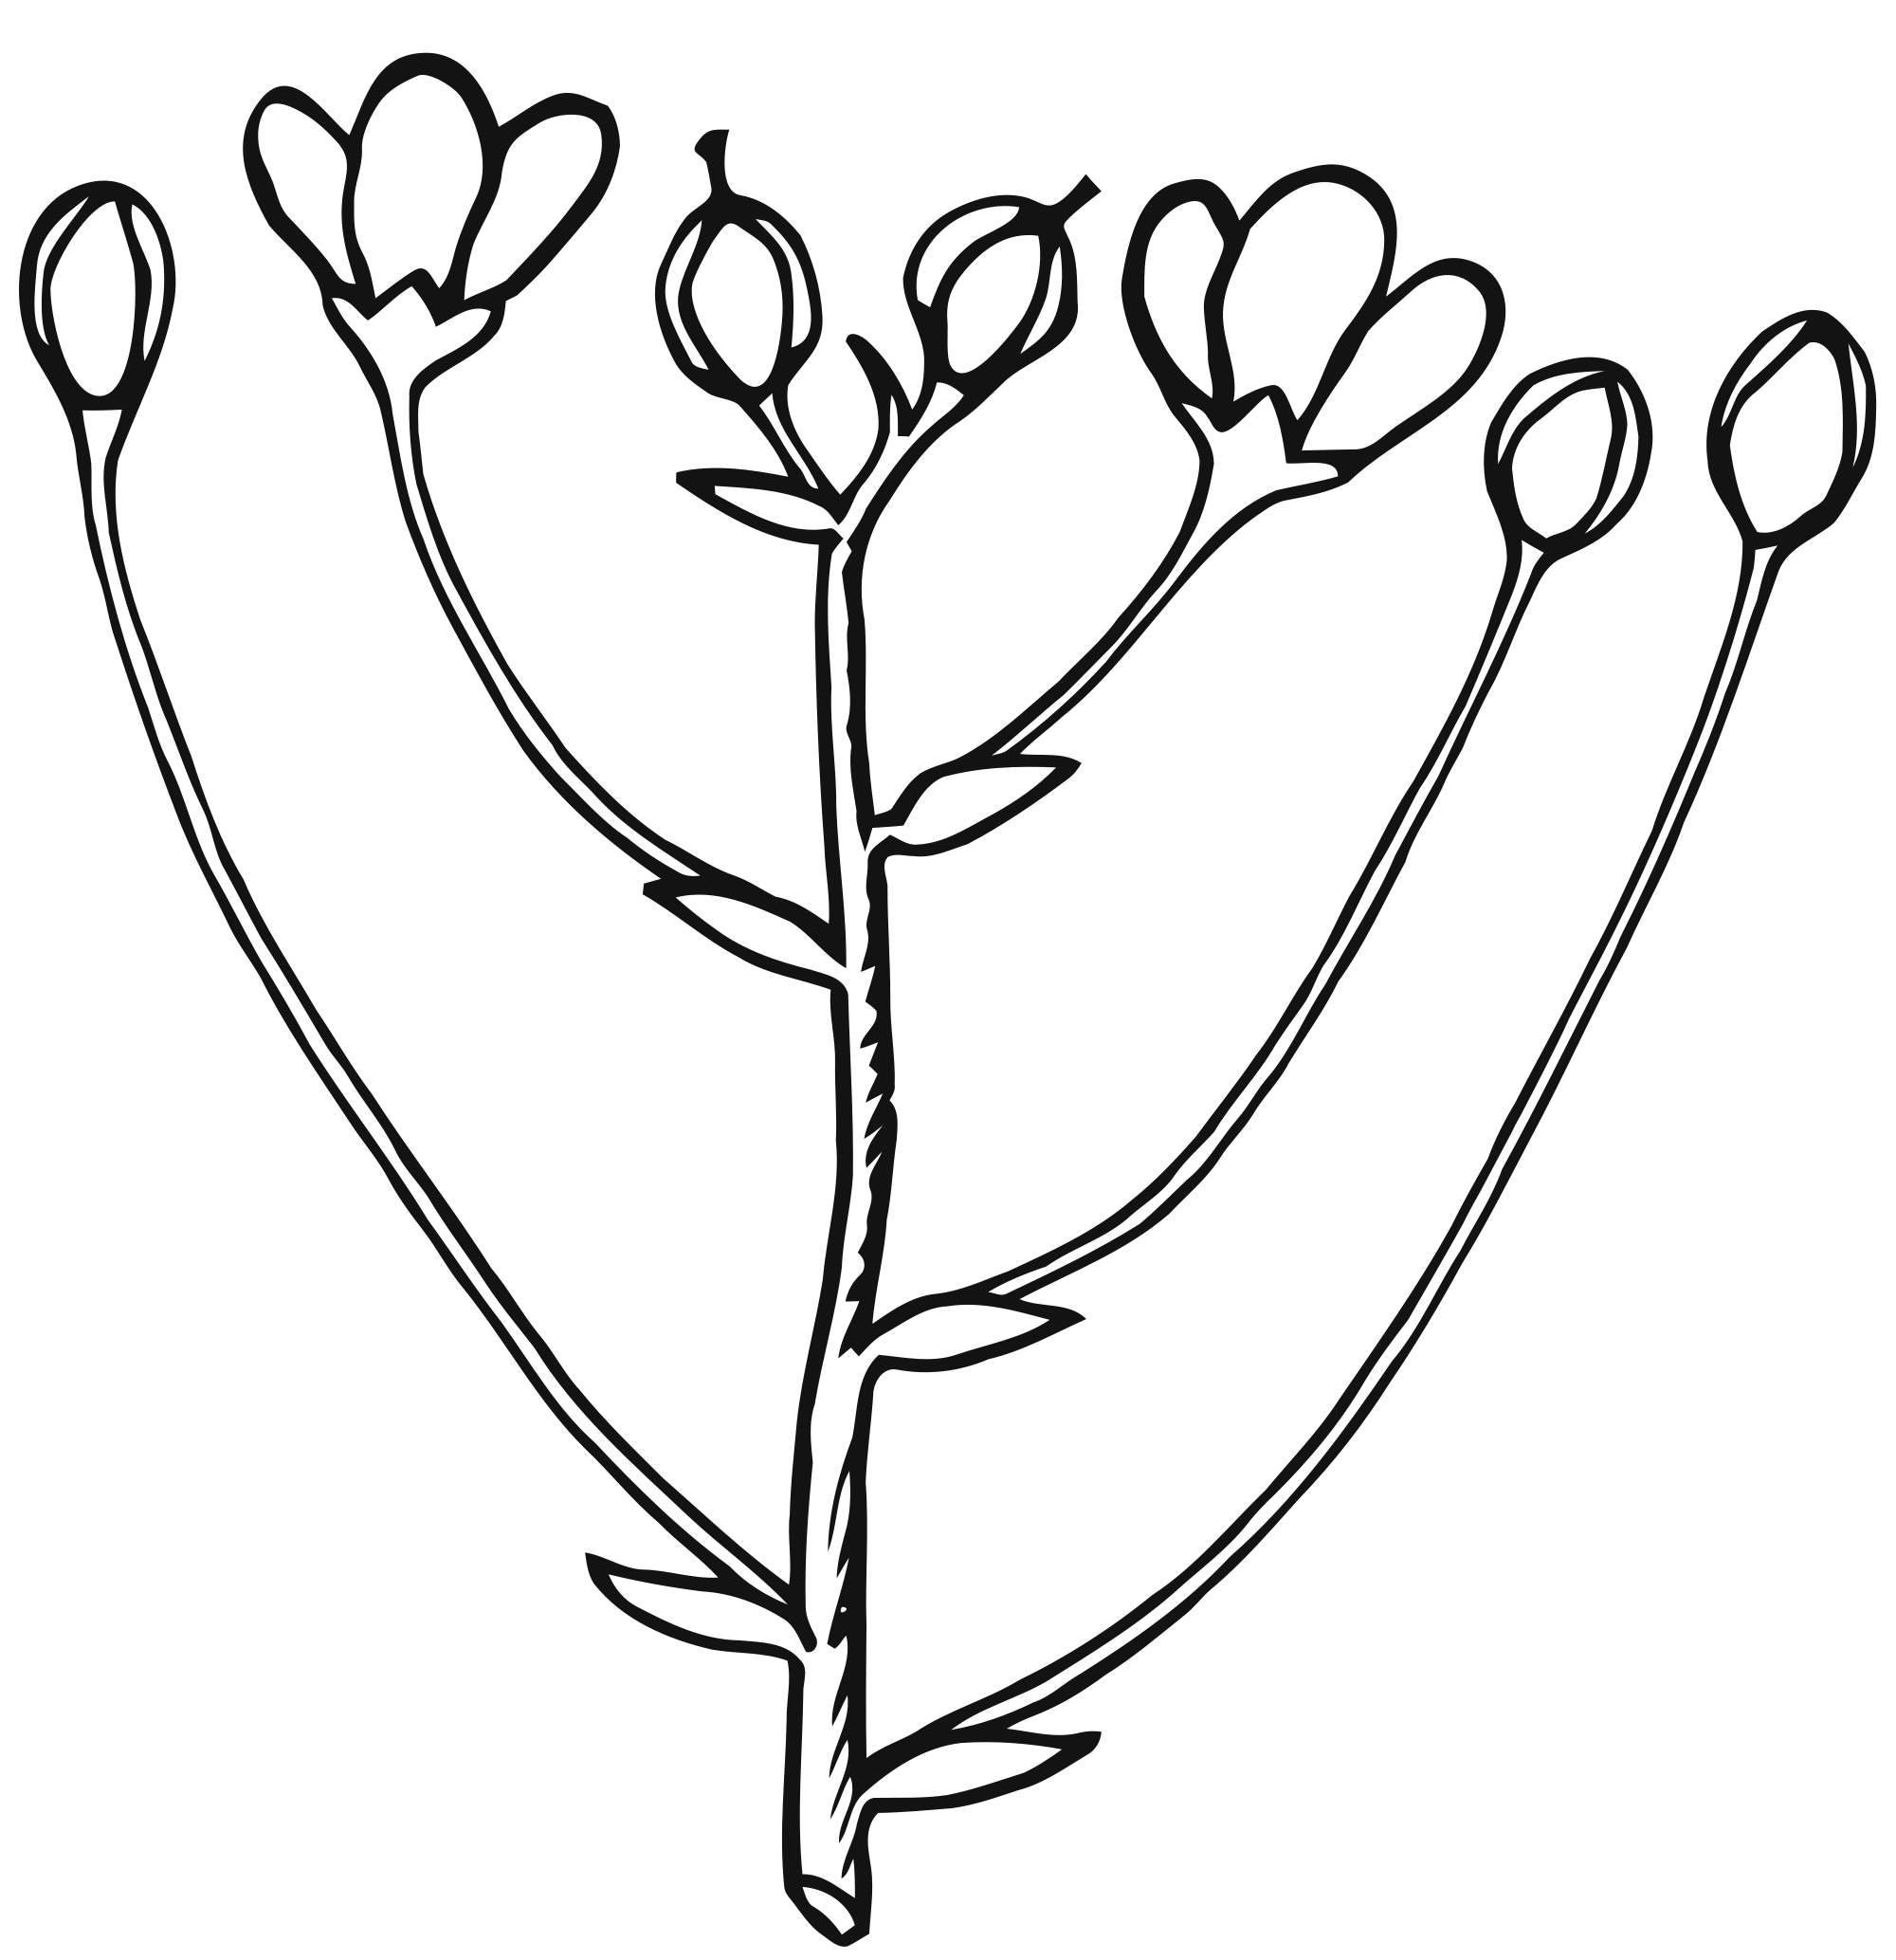 Growth clipart flower bud. Inflorescence cymose